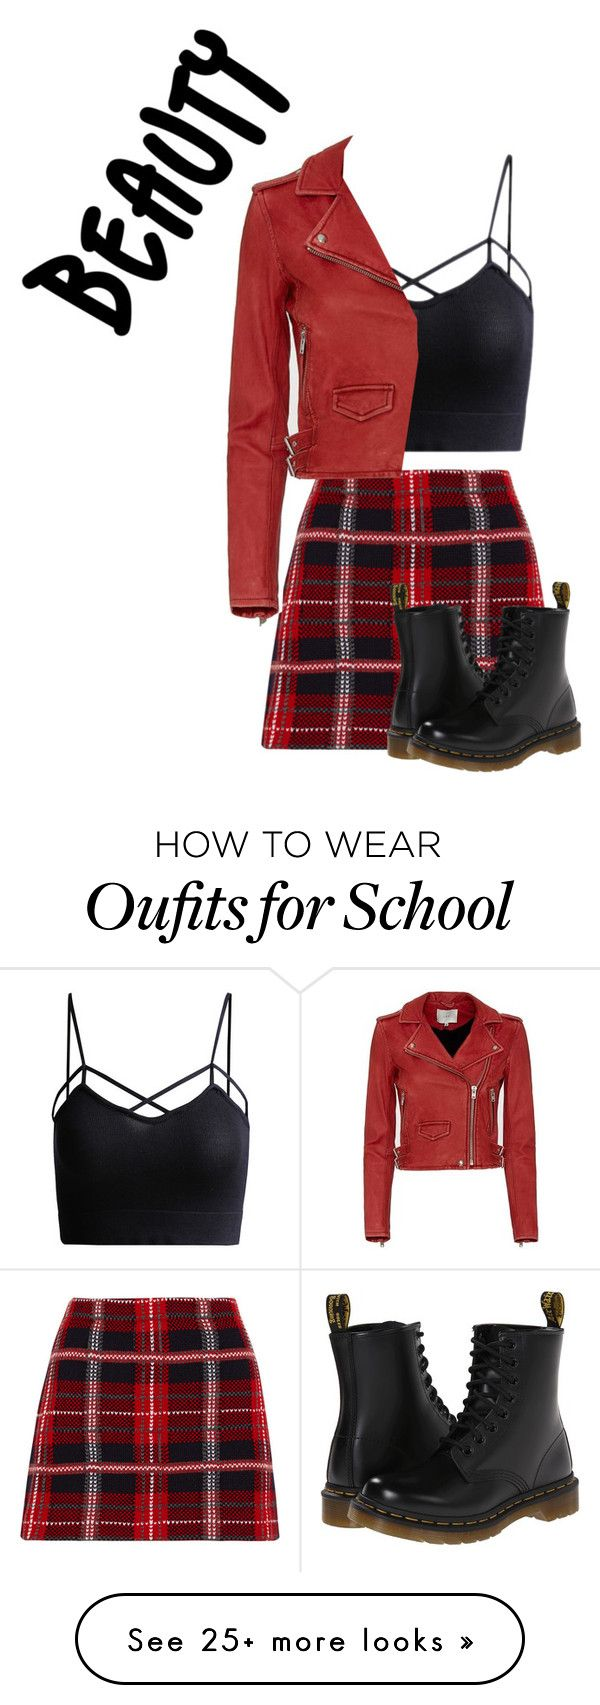 """edgy school girl"" by beautyguruforever on Polyvore featuring Miu Miu, Dr. Martens and IRO"